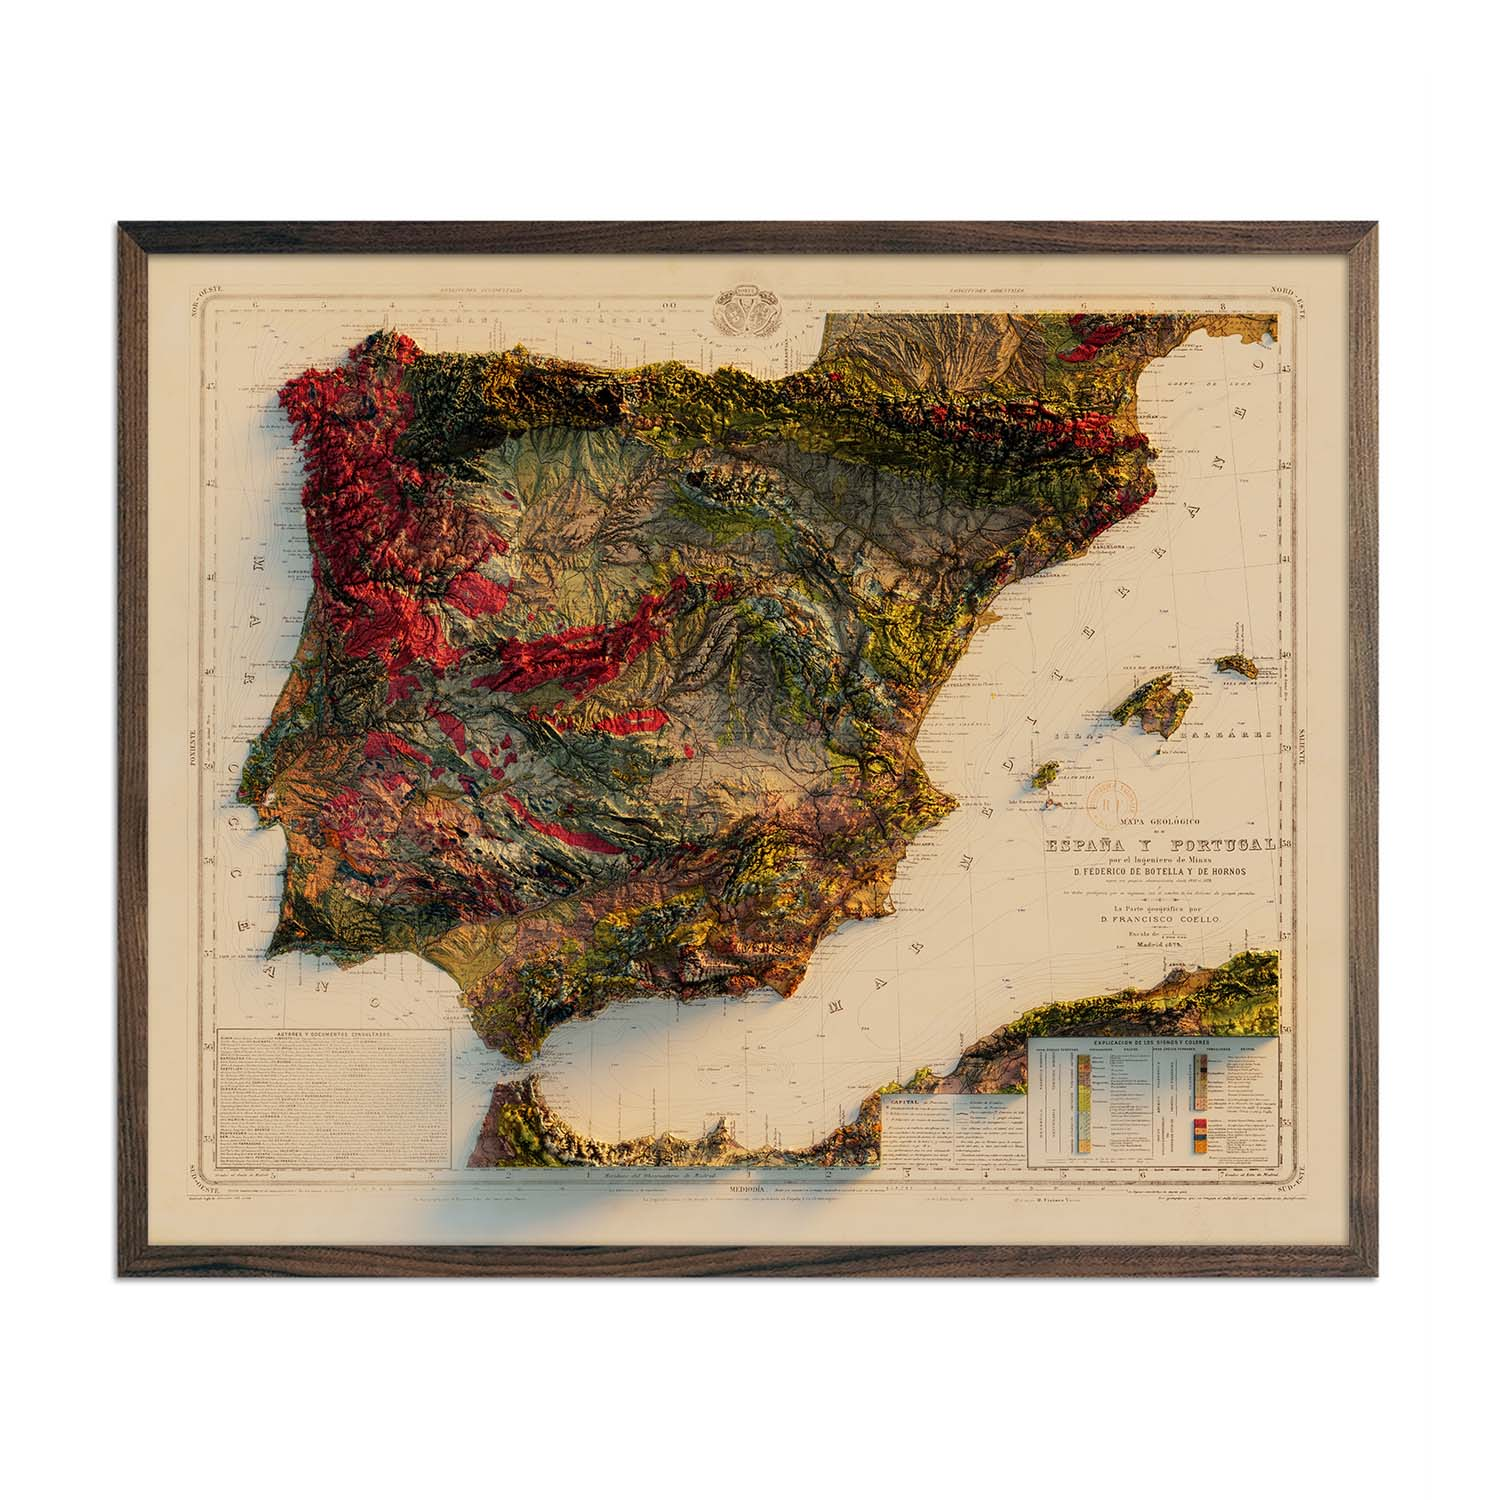 Spain and Portugal 1879 Relief Map